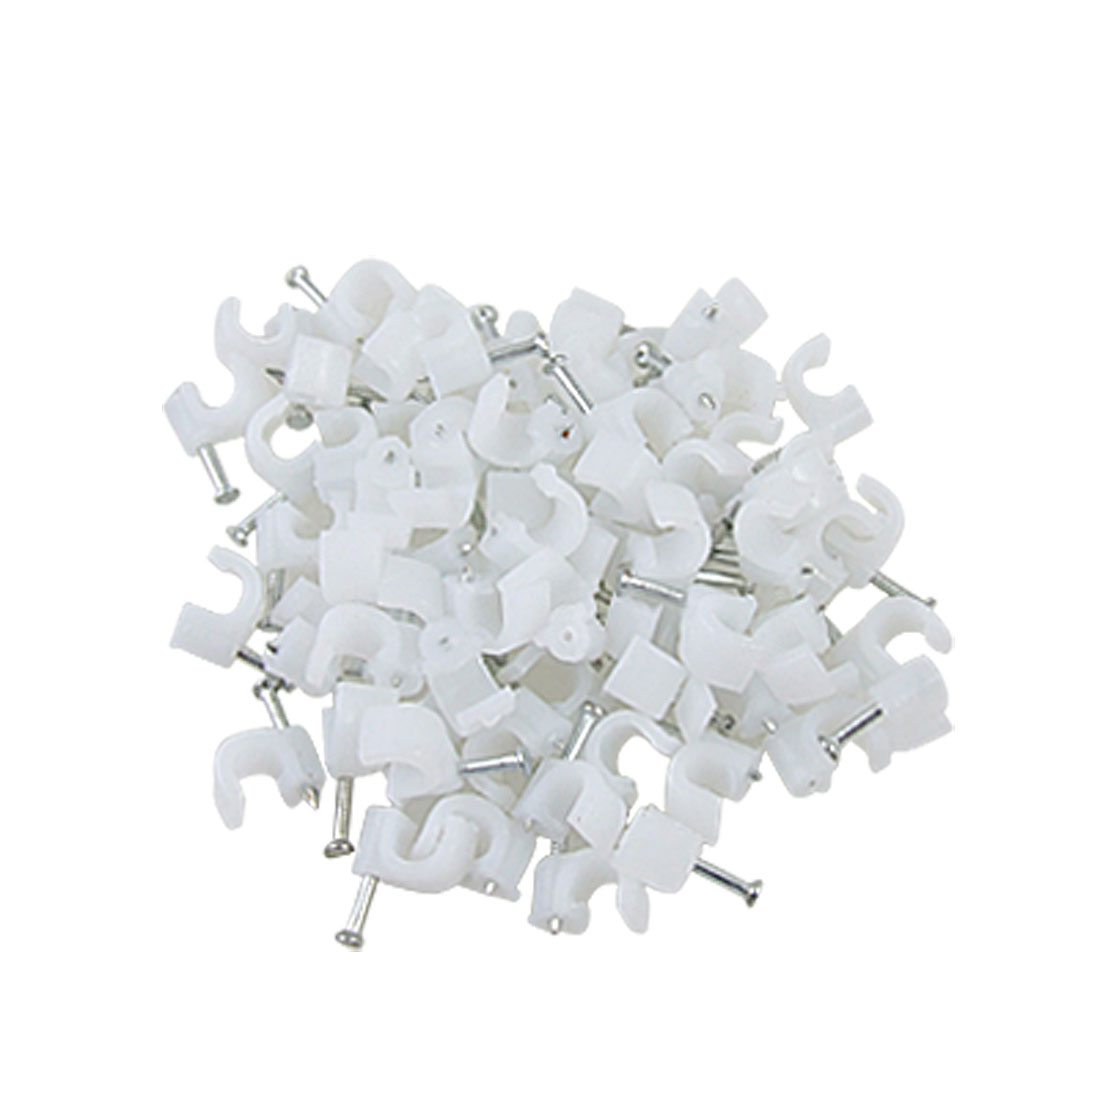 70 Pcs Plastic Circle Nail Clip for 5mm Dia Round Cable